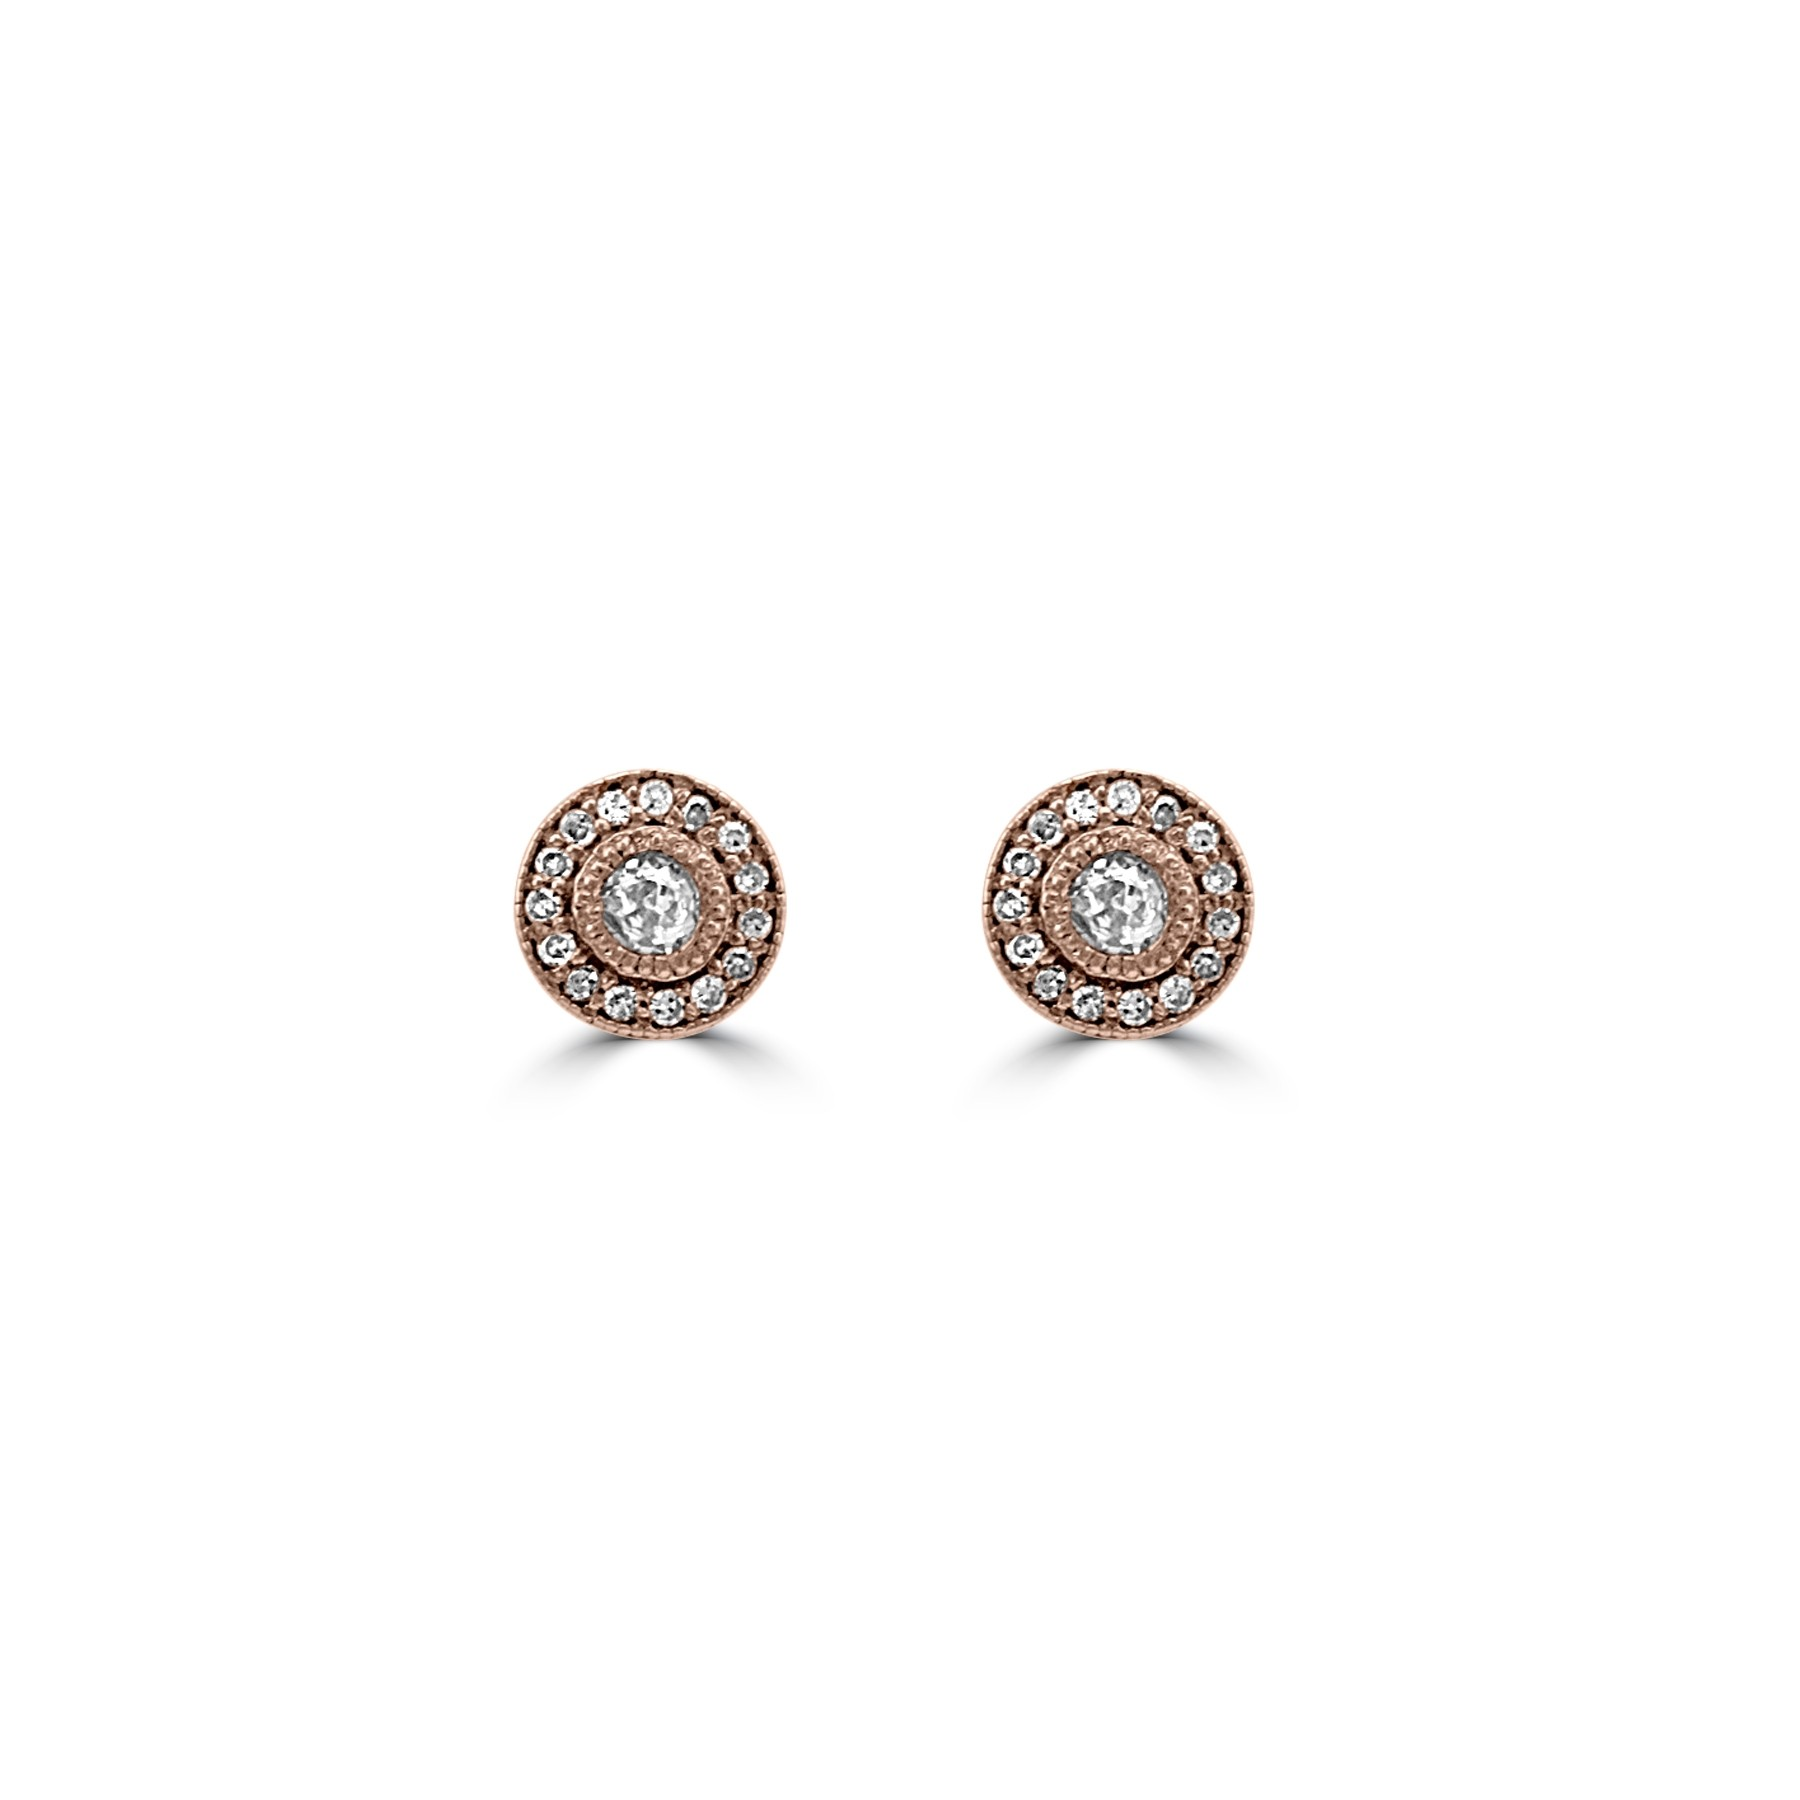 14k R/G Diamond Halo Stud Earrings